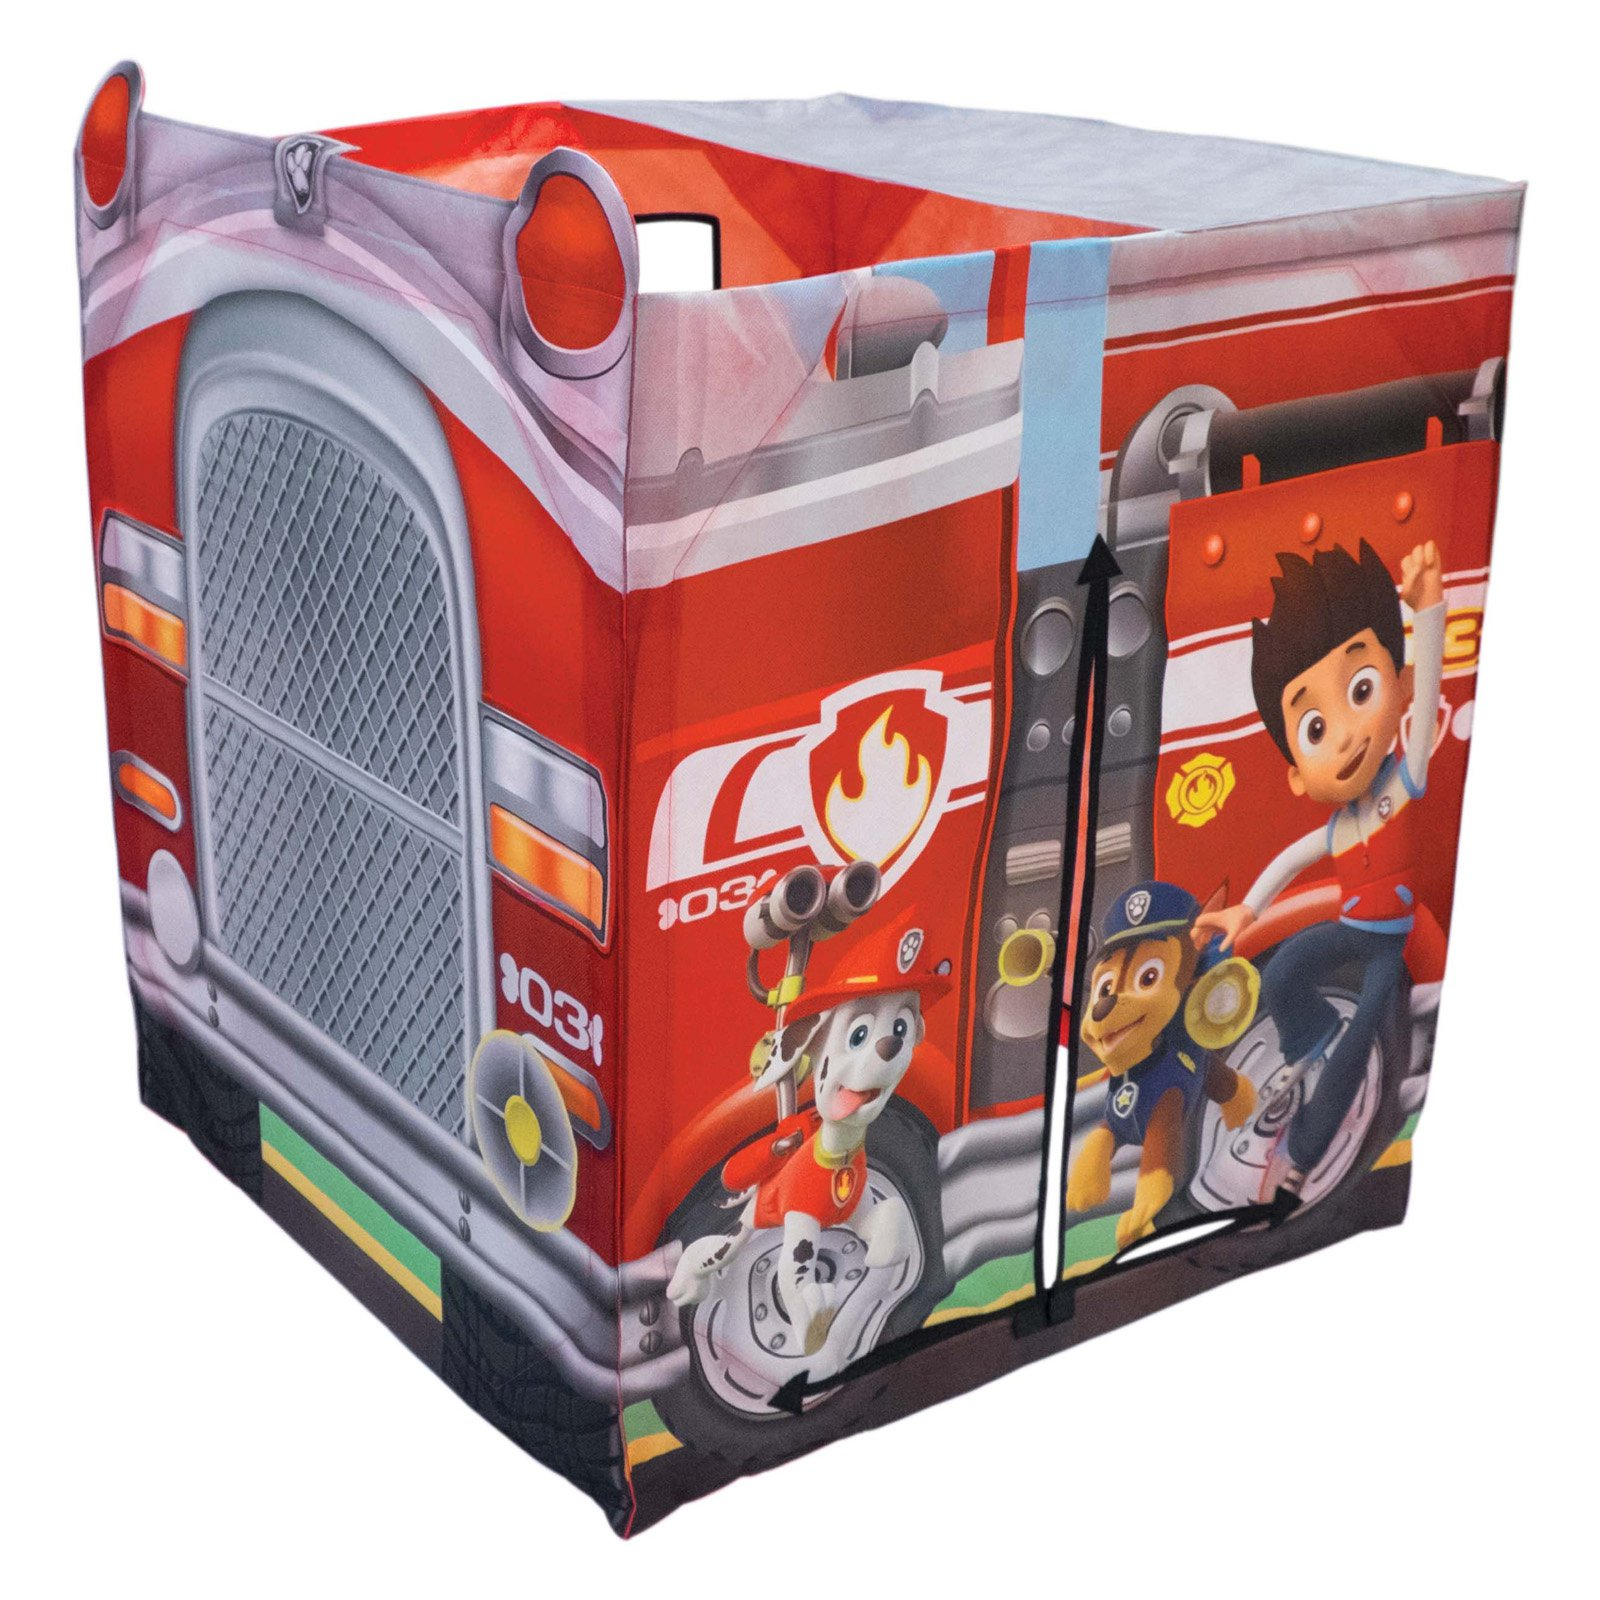 Playhut Paw Patrol EZ Vehicle Fire Truck Play Tent